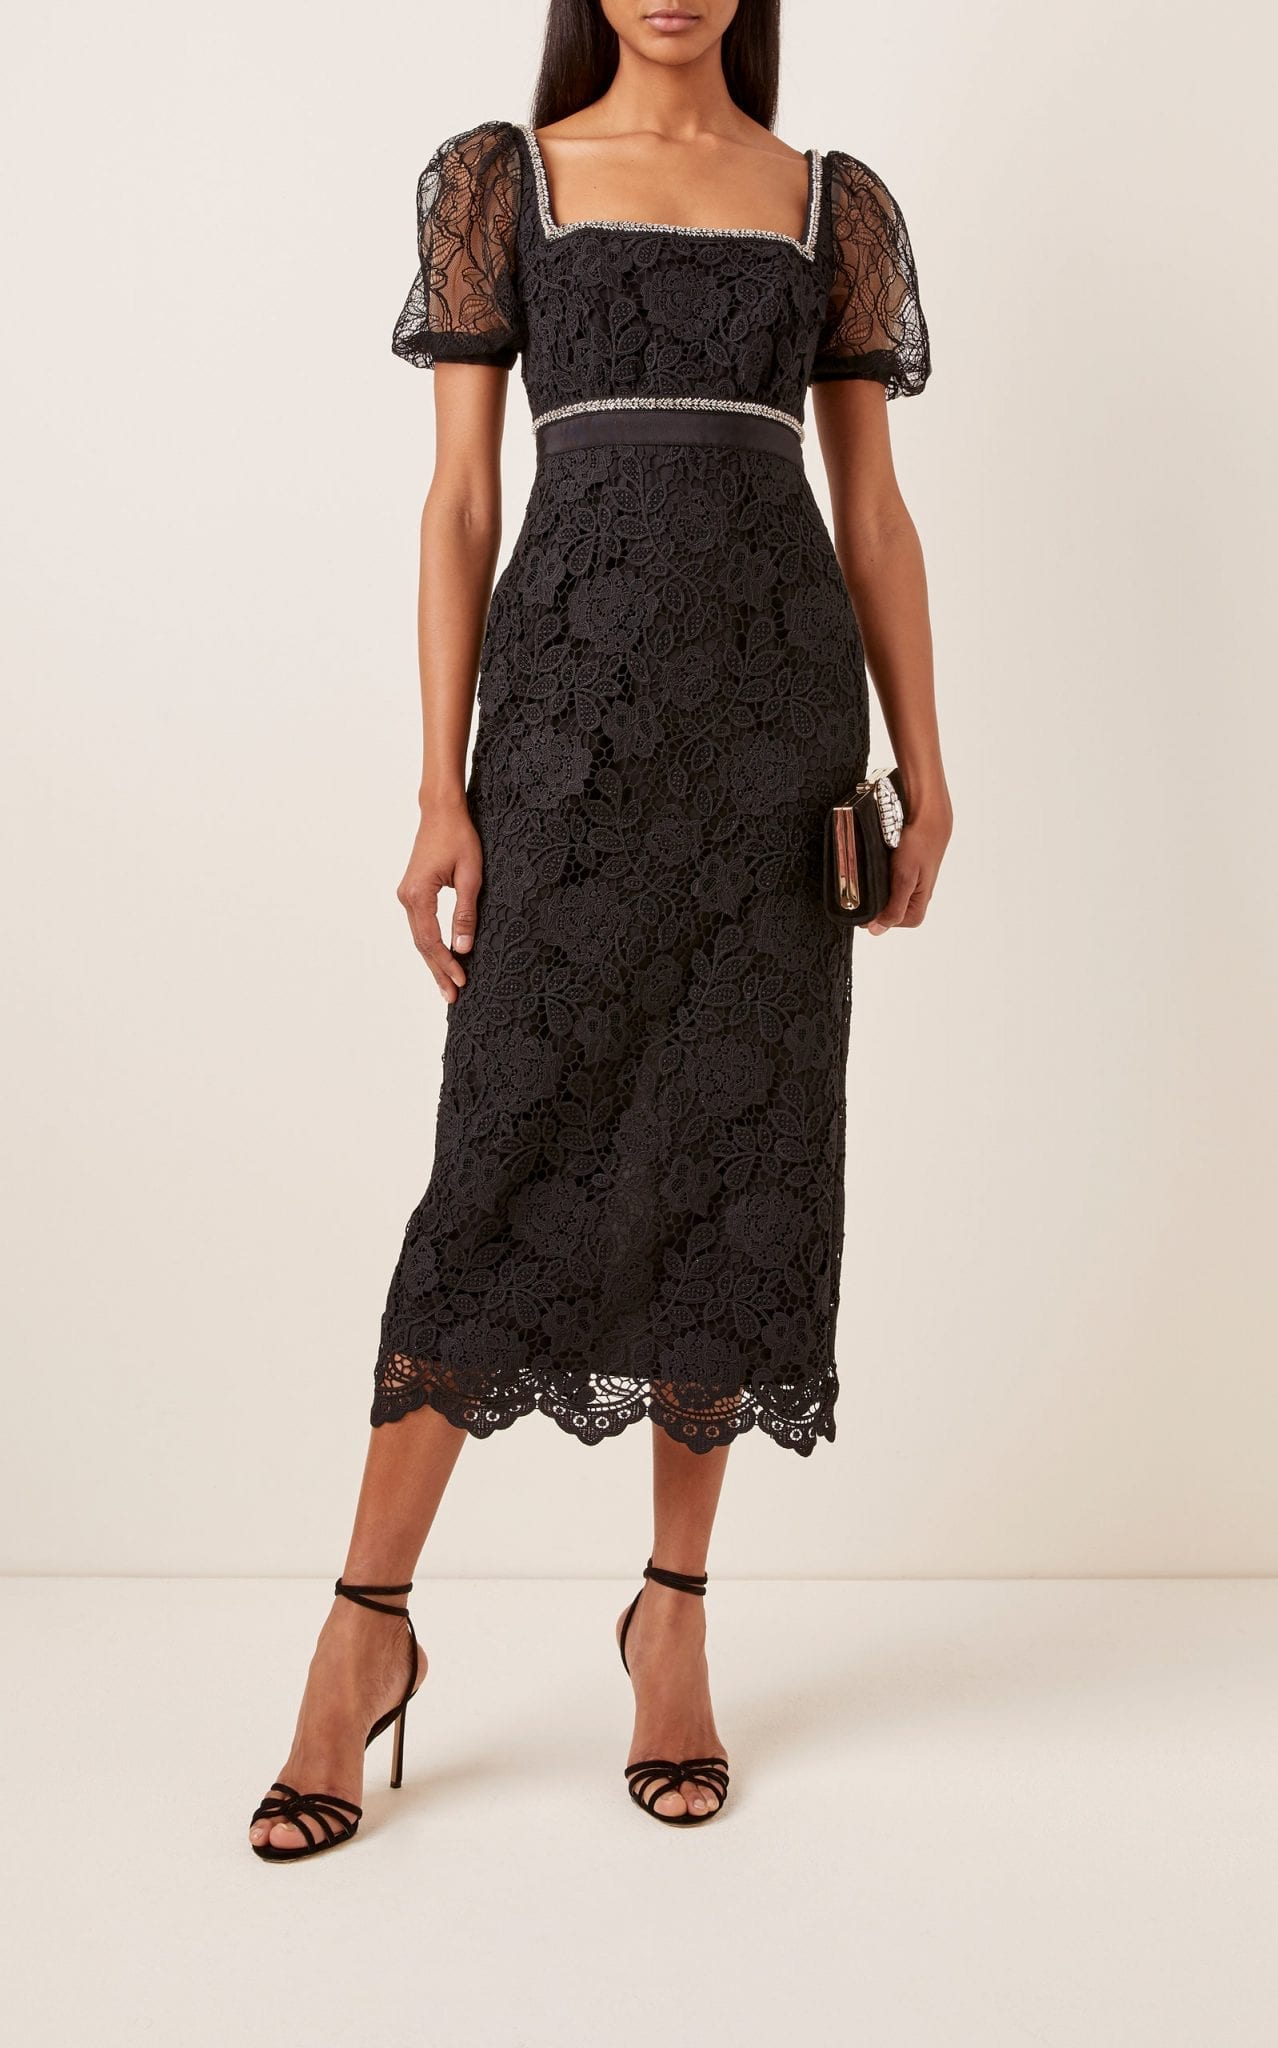 SELF PORTRAIT Square-Neck Lace Midi Dress